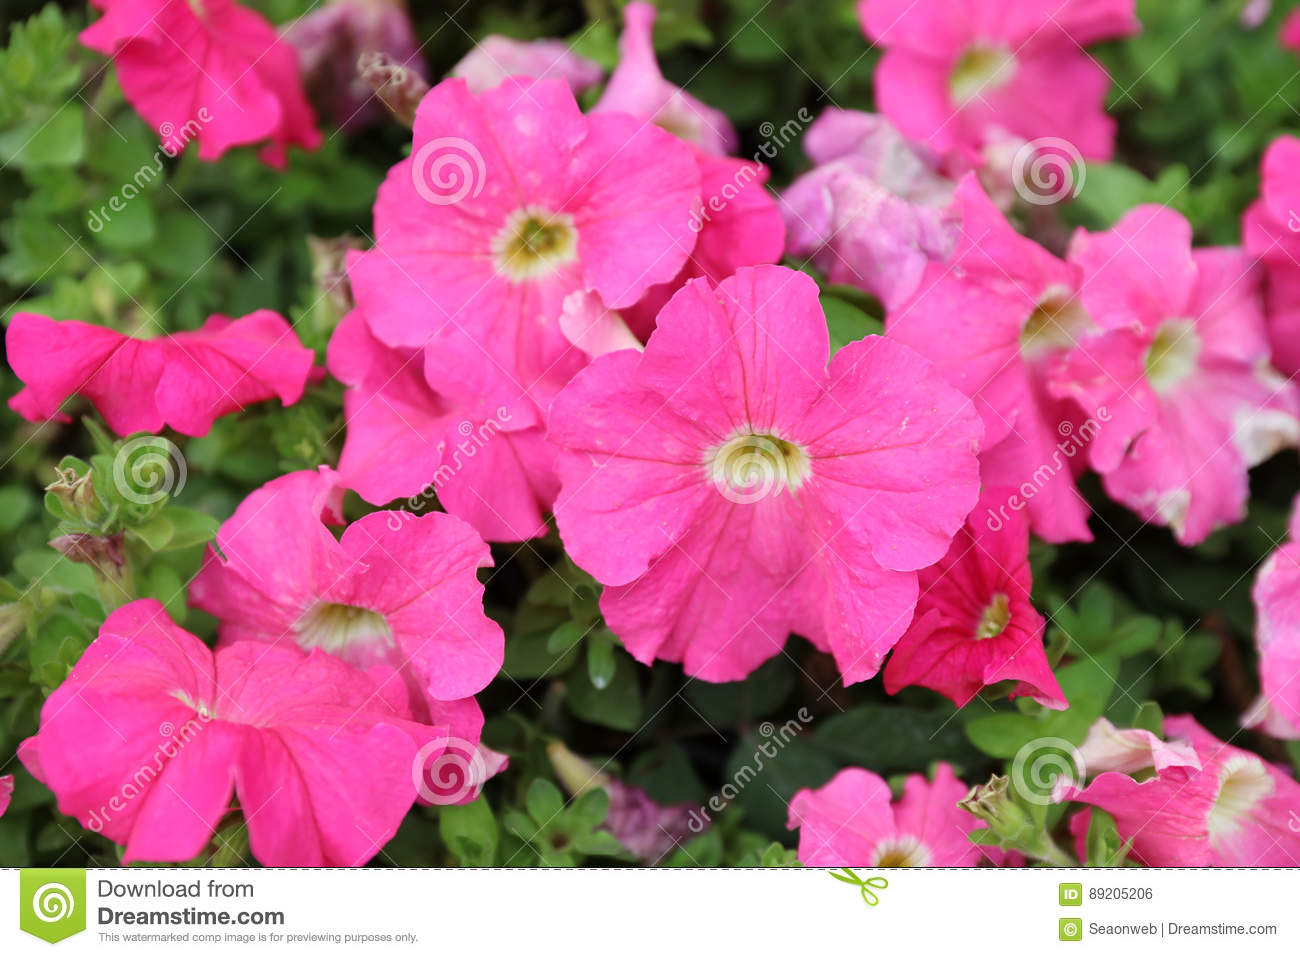 pink color orning glory at garden 2017 stock photo - image: 89205206